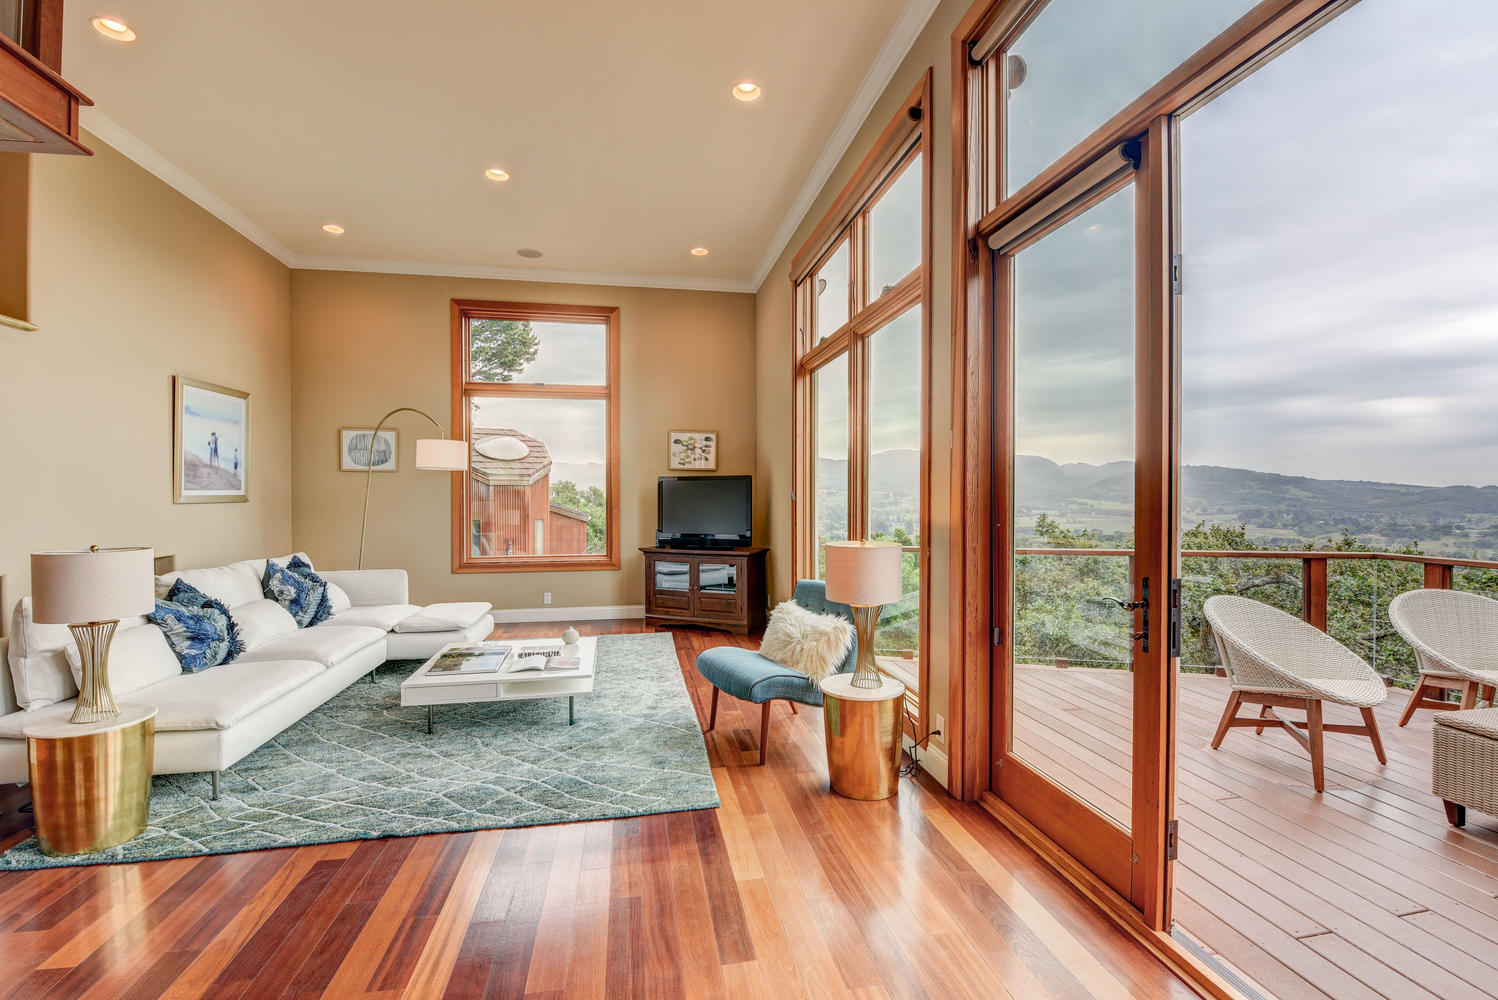 583 Montecito Napa Home Vacation Rental In Napa County   RedAwning